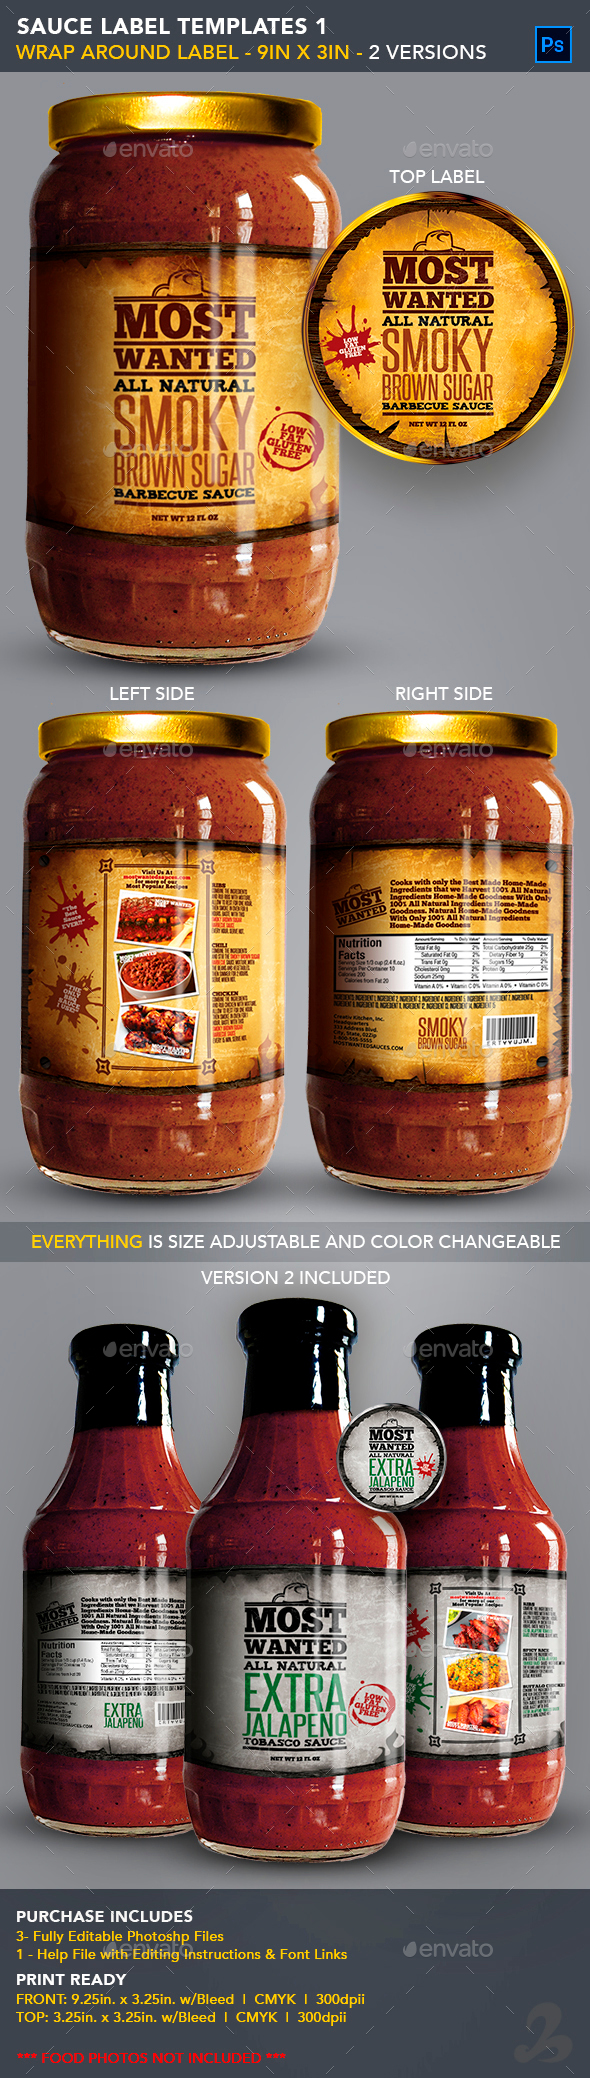 Sauce Jar Label Templates - Western - Packaging Print Templates